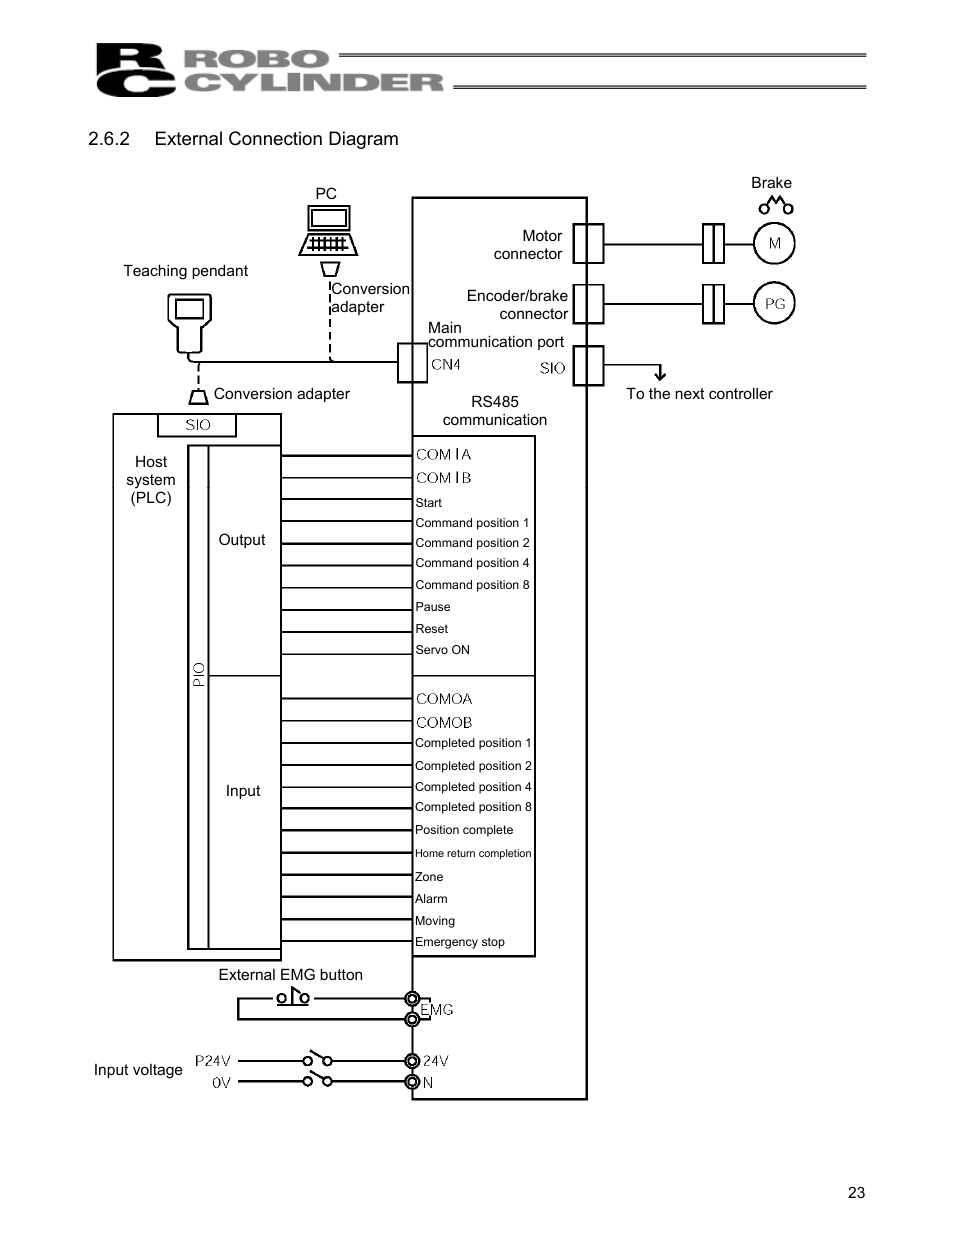 2 external connection diagram, External connection diagram